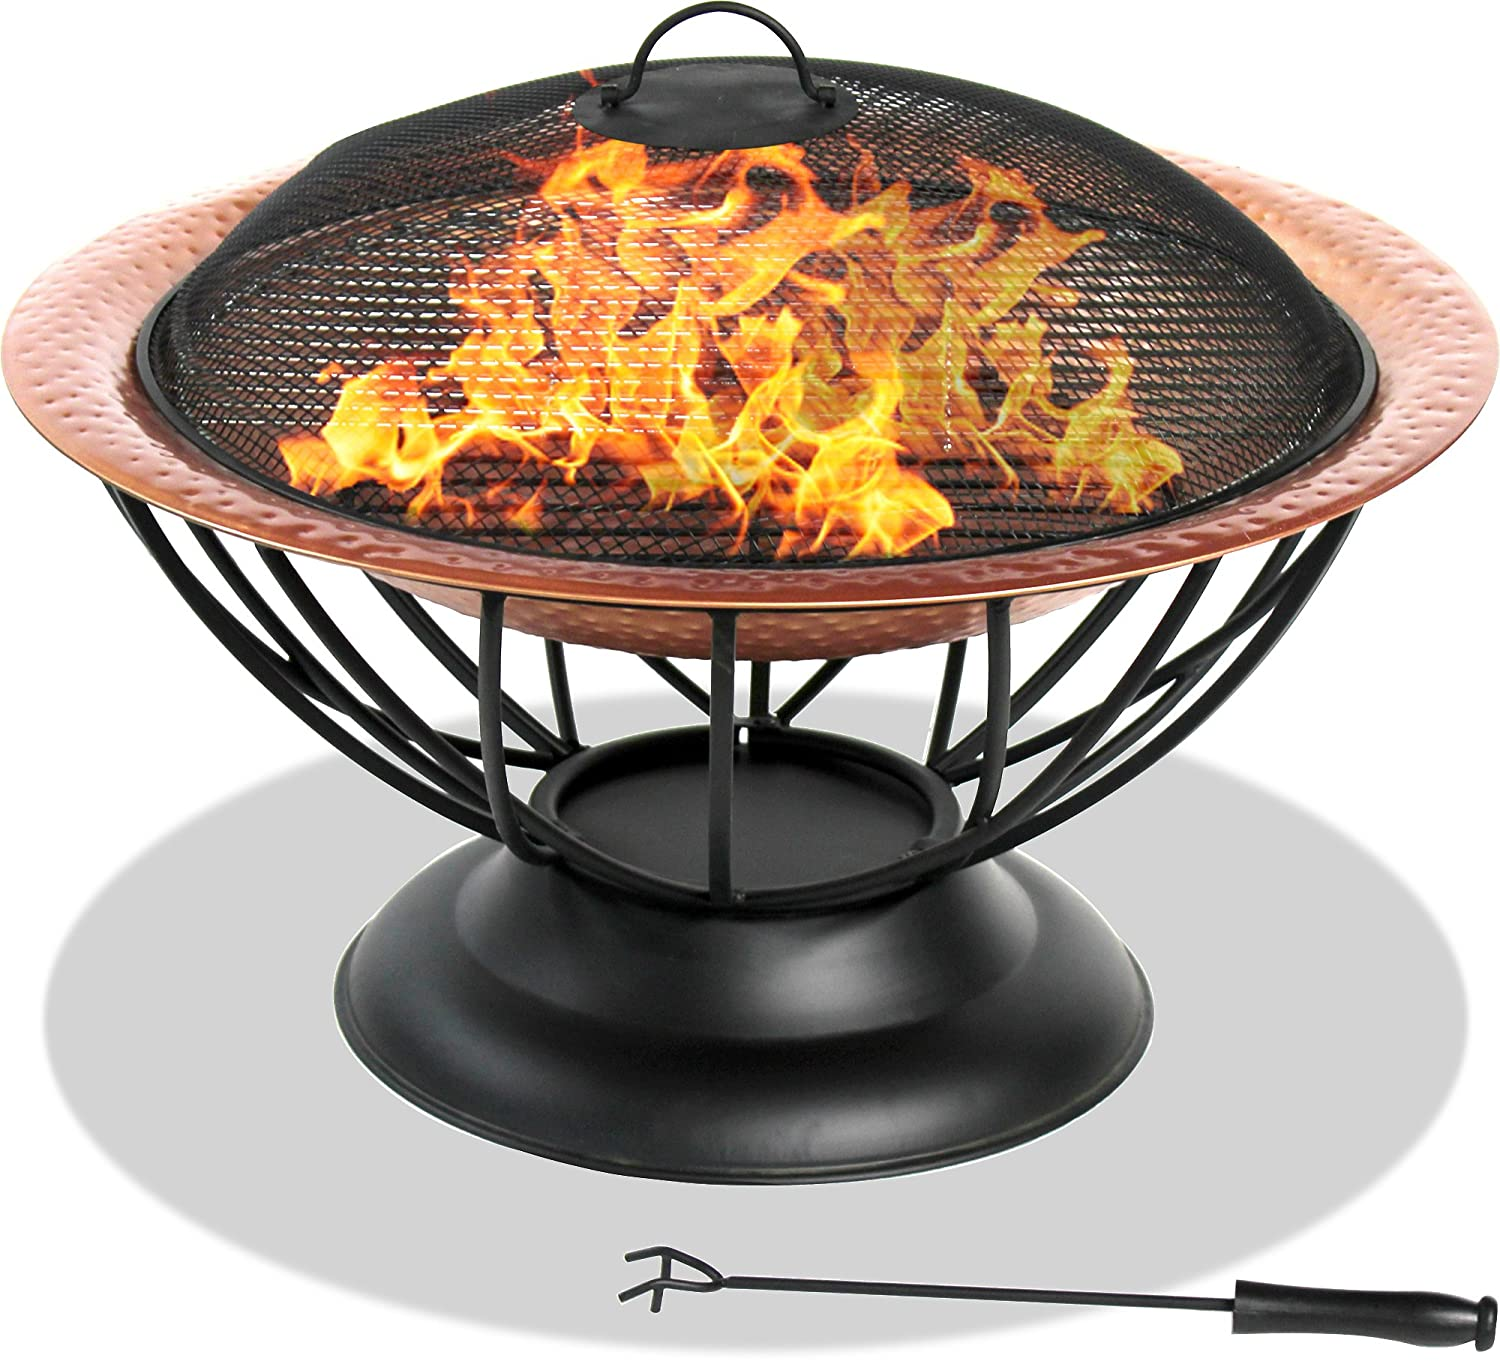 Centurion Supports Fireology VALENTINA Hammered Copper Fire Pit, Garden & Patio Heater, Coffee Table, Barbecue and Ice Bucket